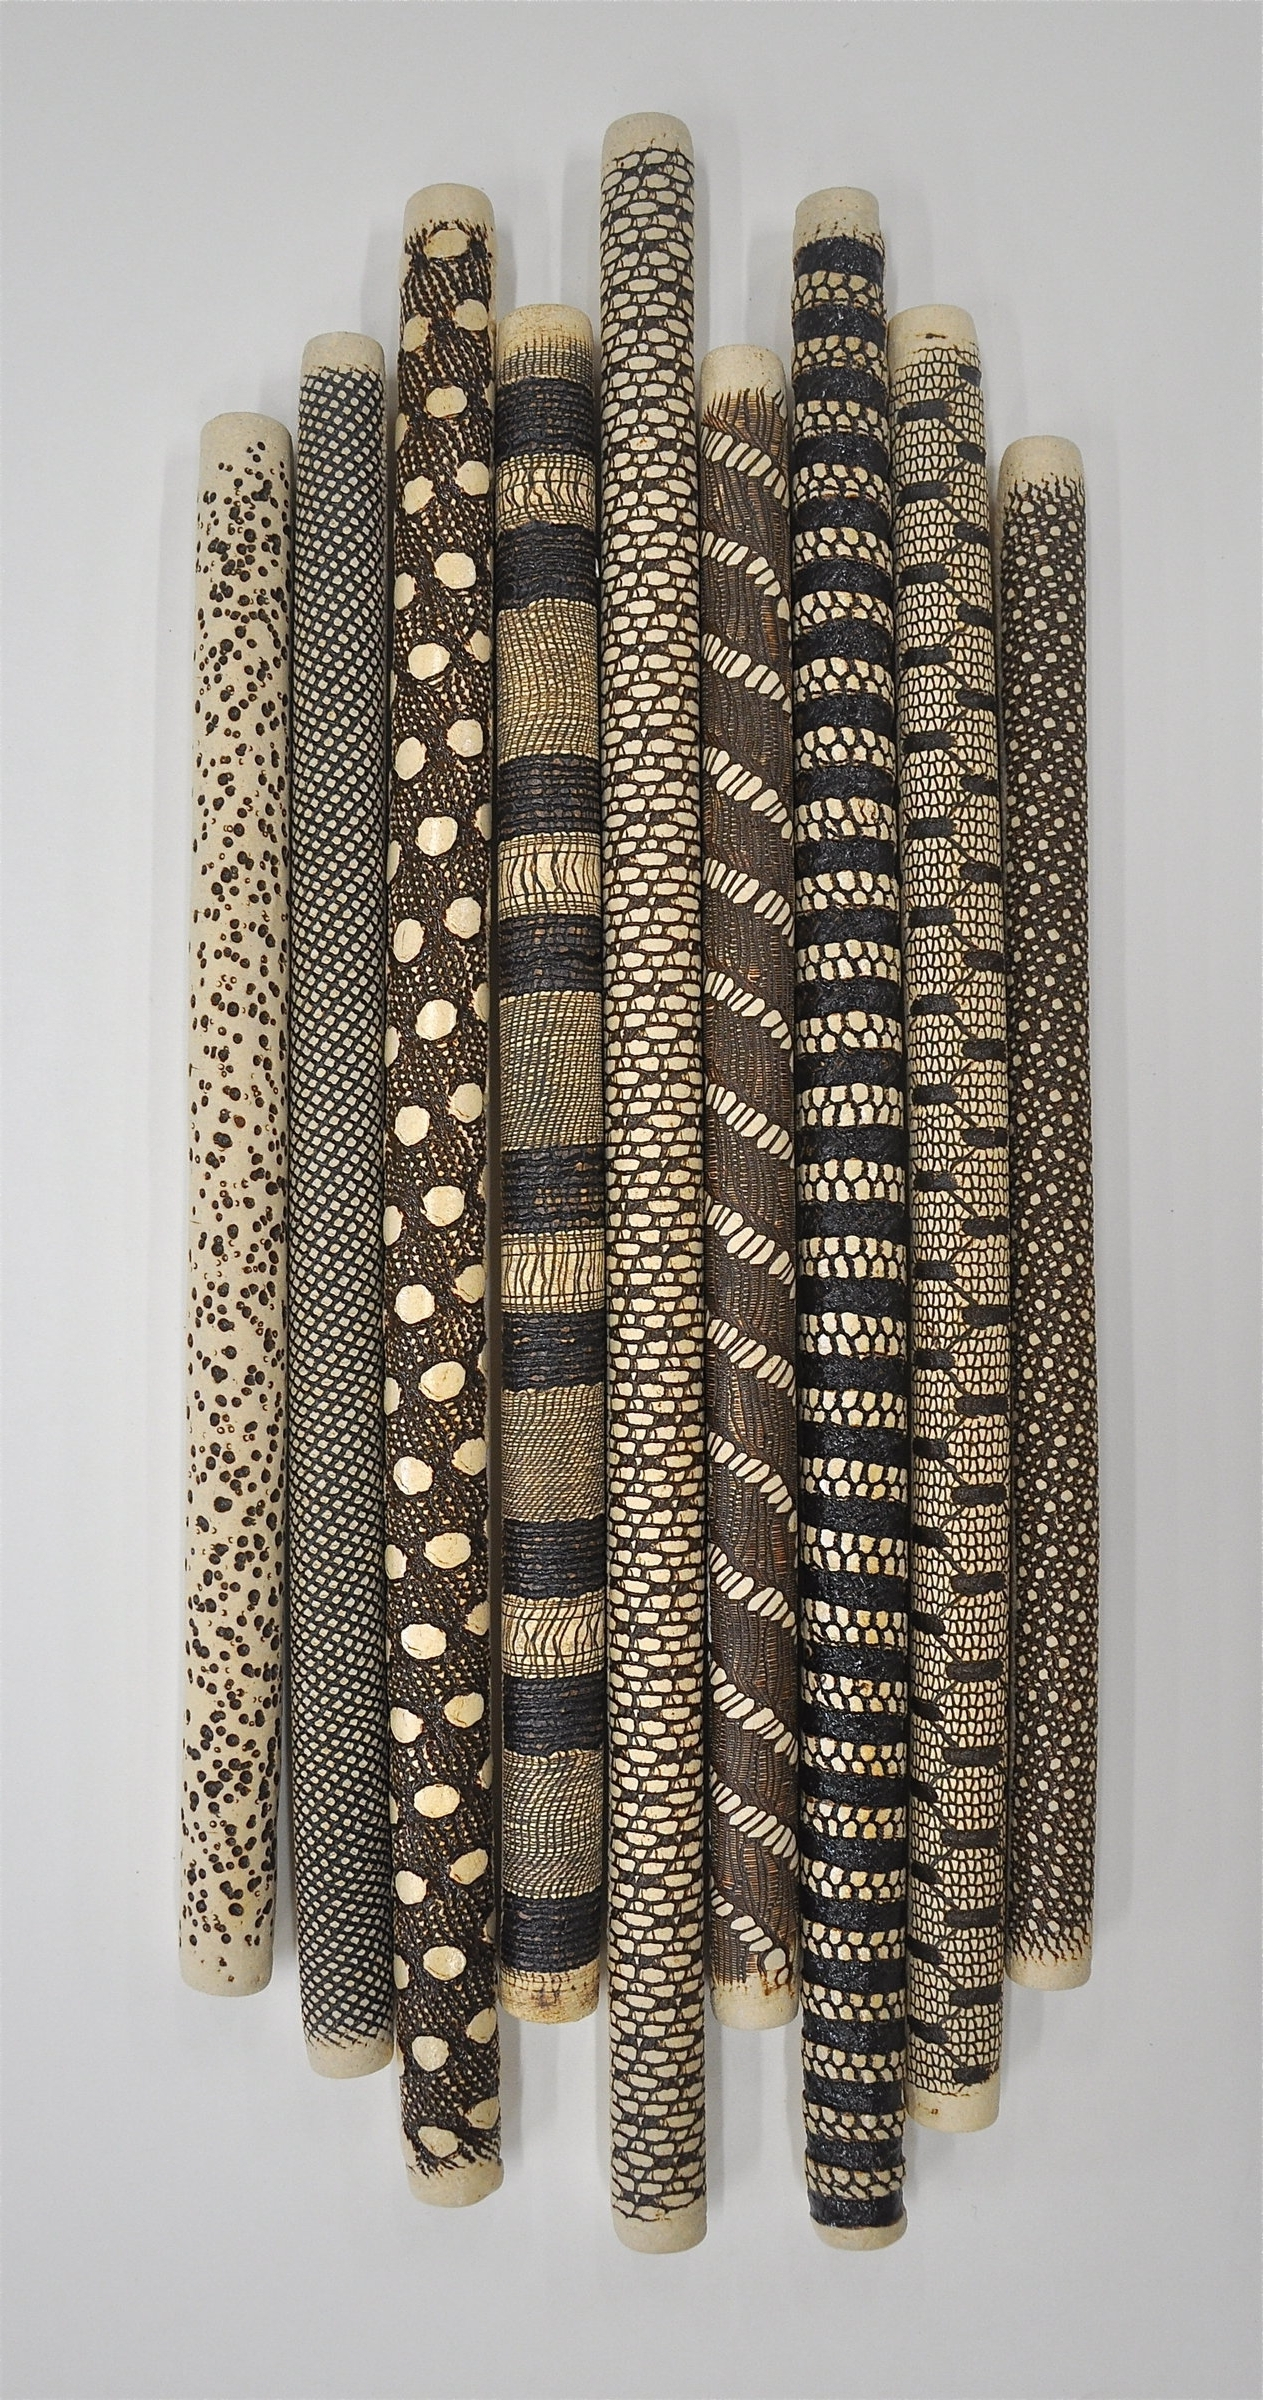 9 Piece Installationkelly Jean Ohl (Ceramic Wall Sculpture In 2018 Ceramic Wall Art (View 1 of 15)